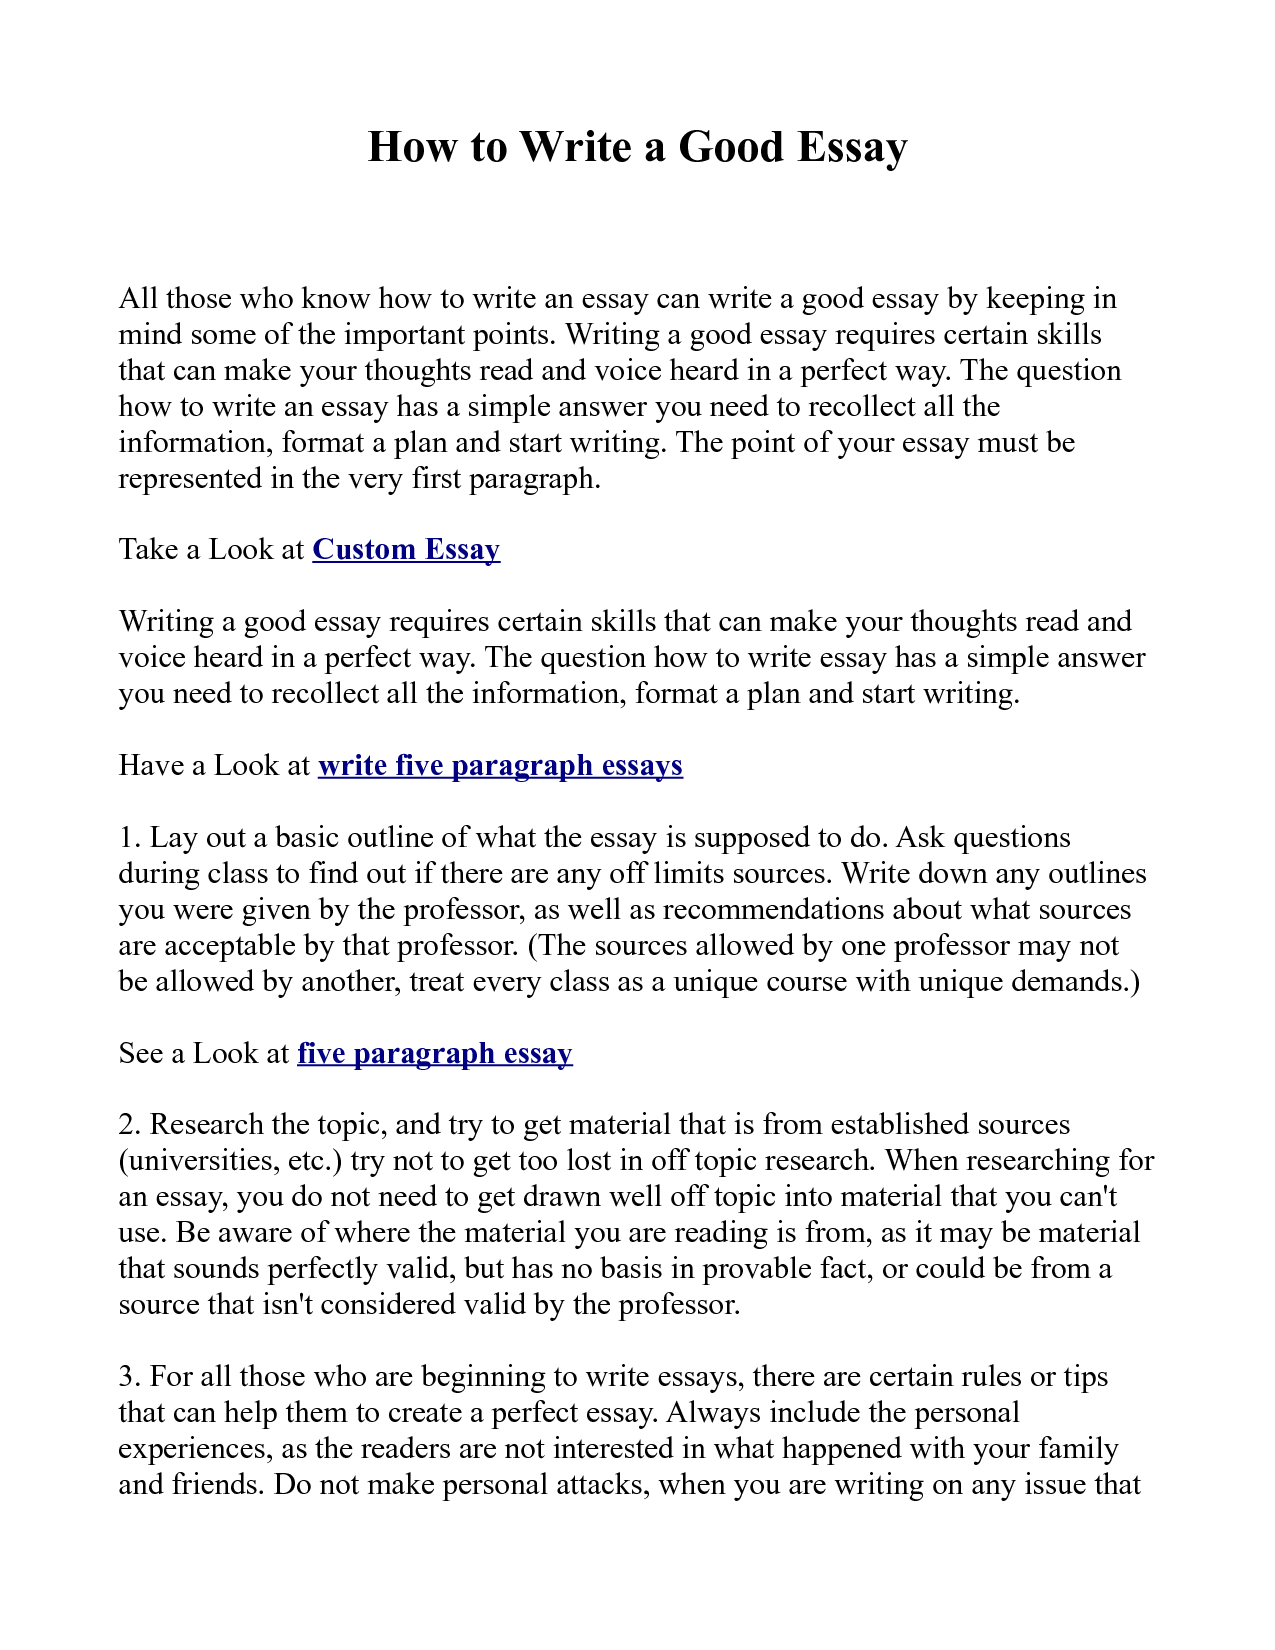 003 How To Make Good Essay Stupendous A Paper Plane Step By Title Page Thesis Statement For Descriptive Full